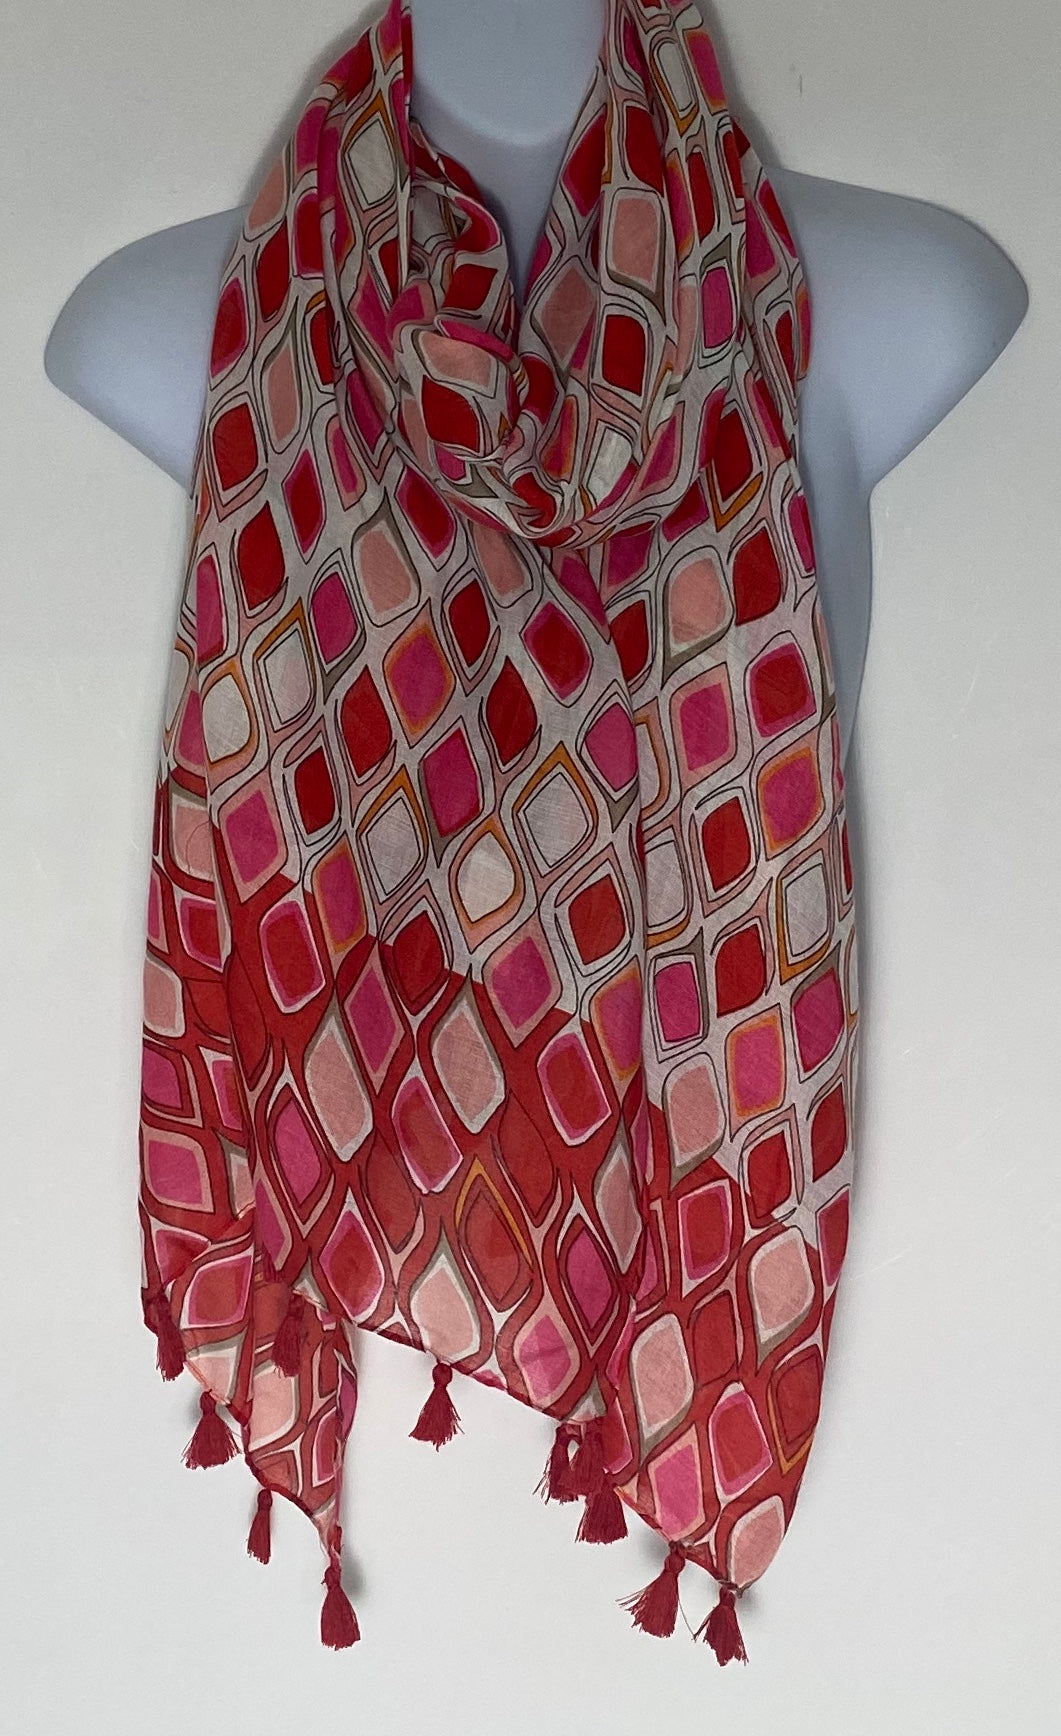 Shades of Red harlequin print tassel scarf